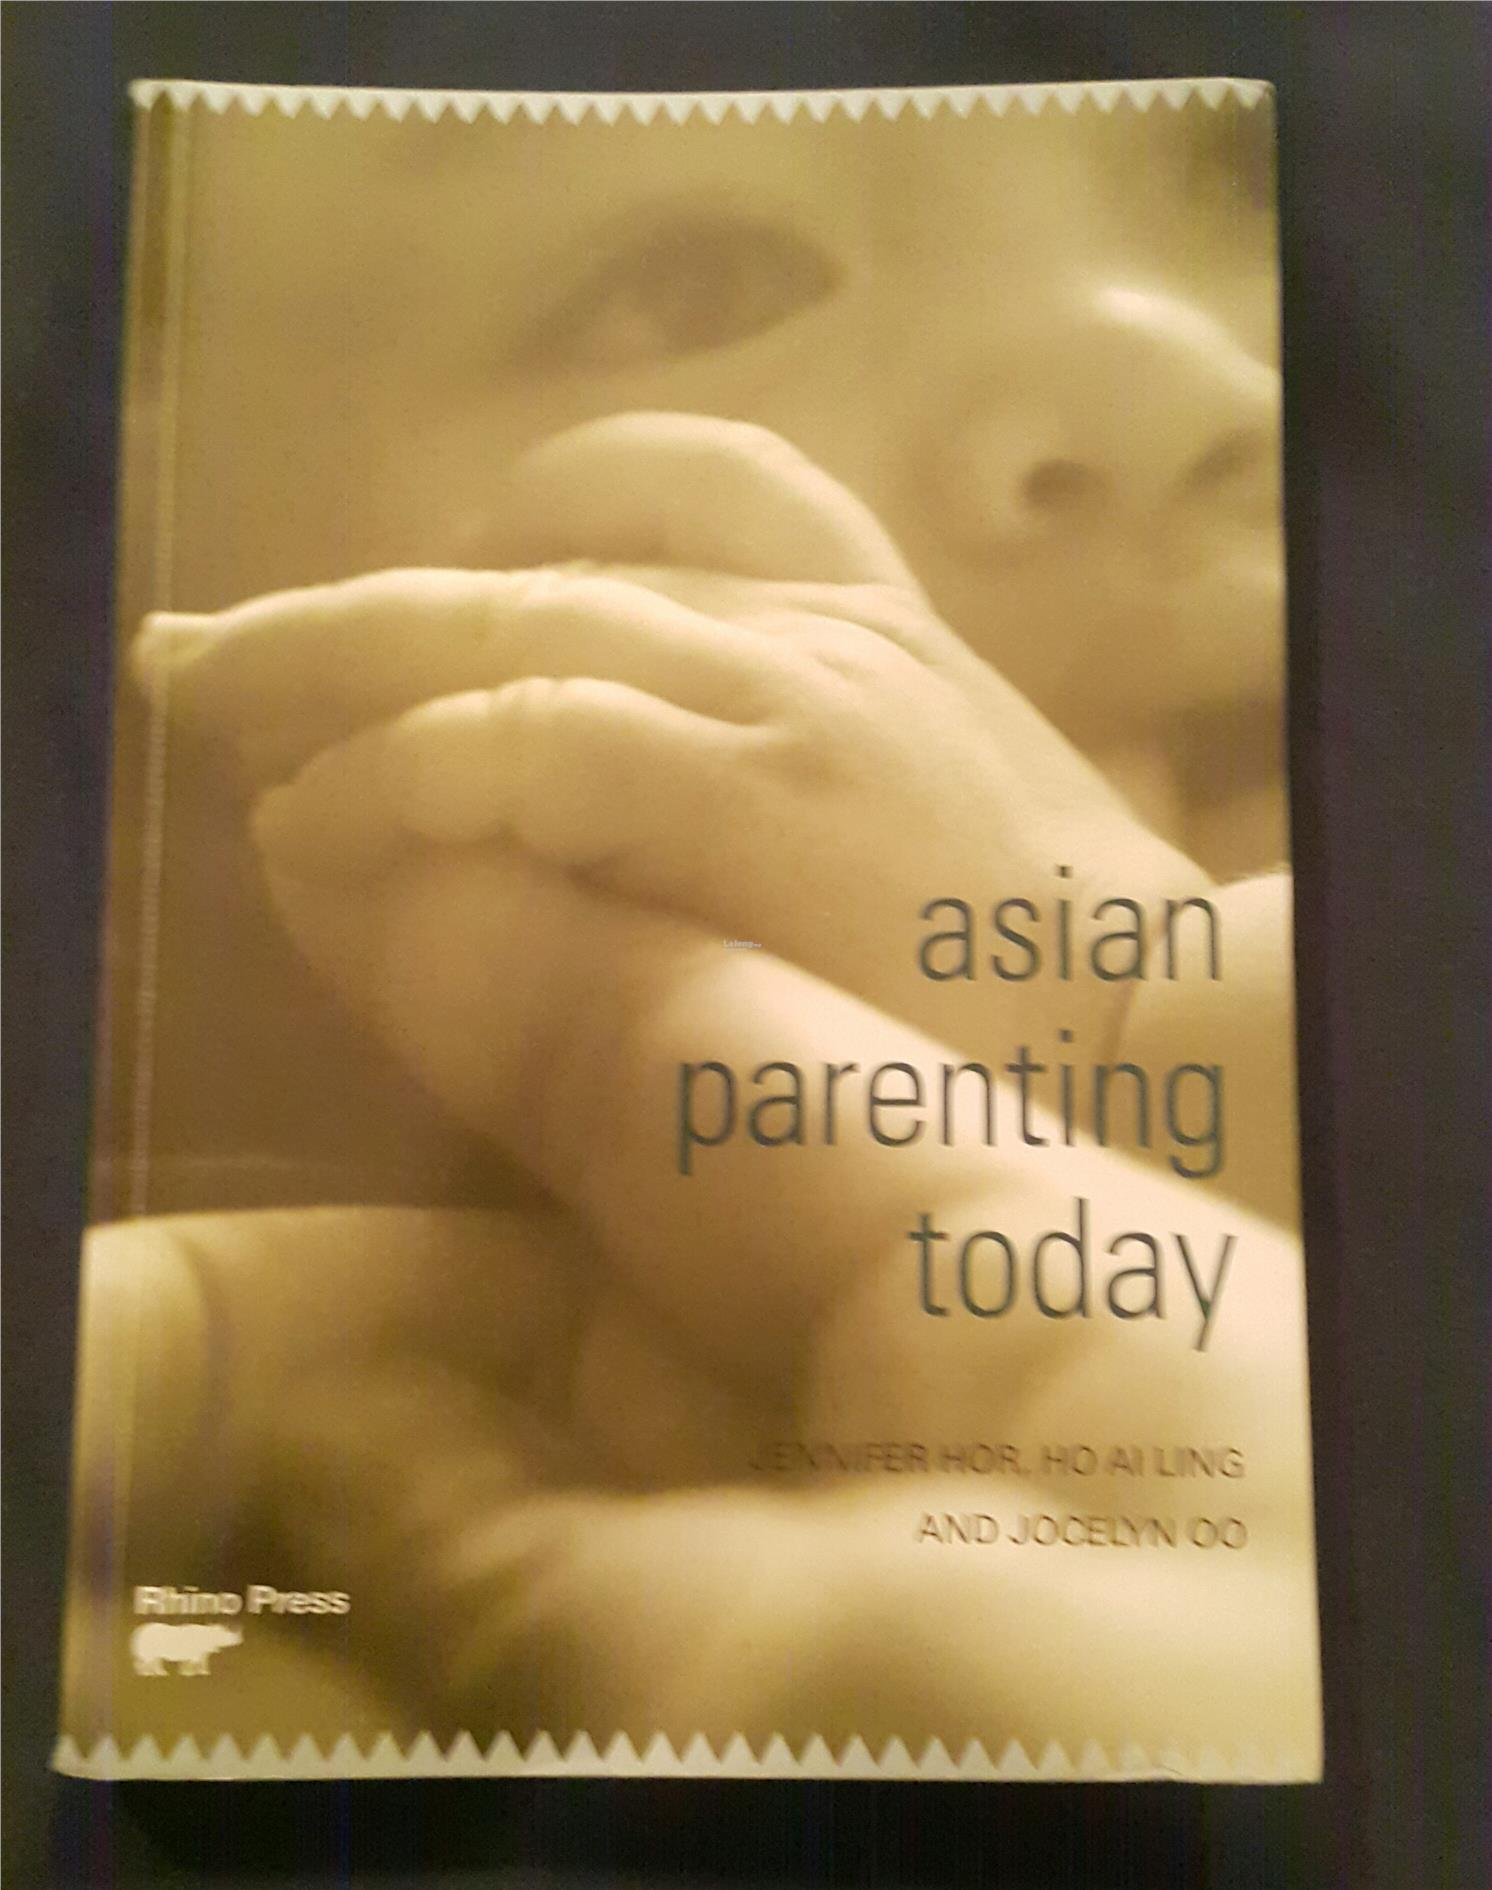 Asian parenting today parenting book (good condition)